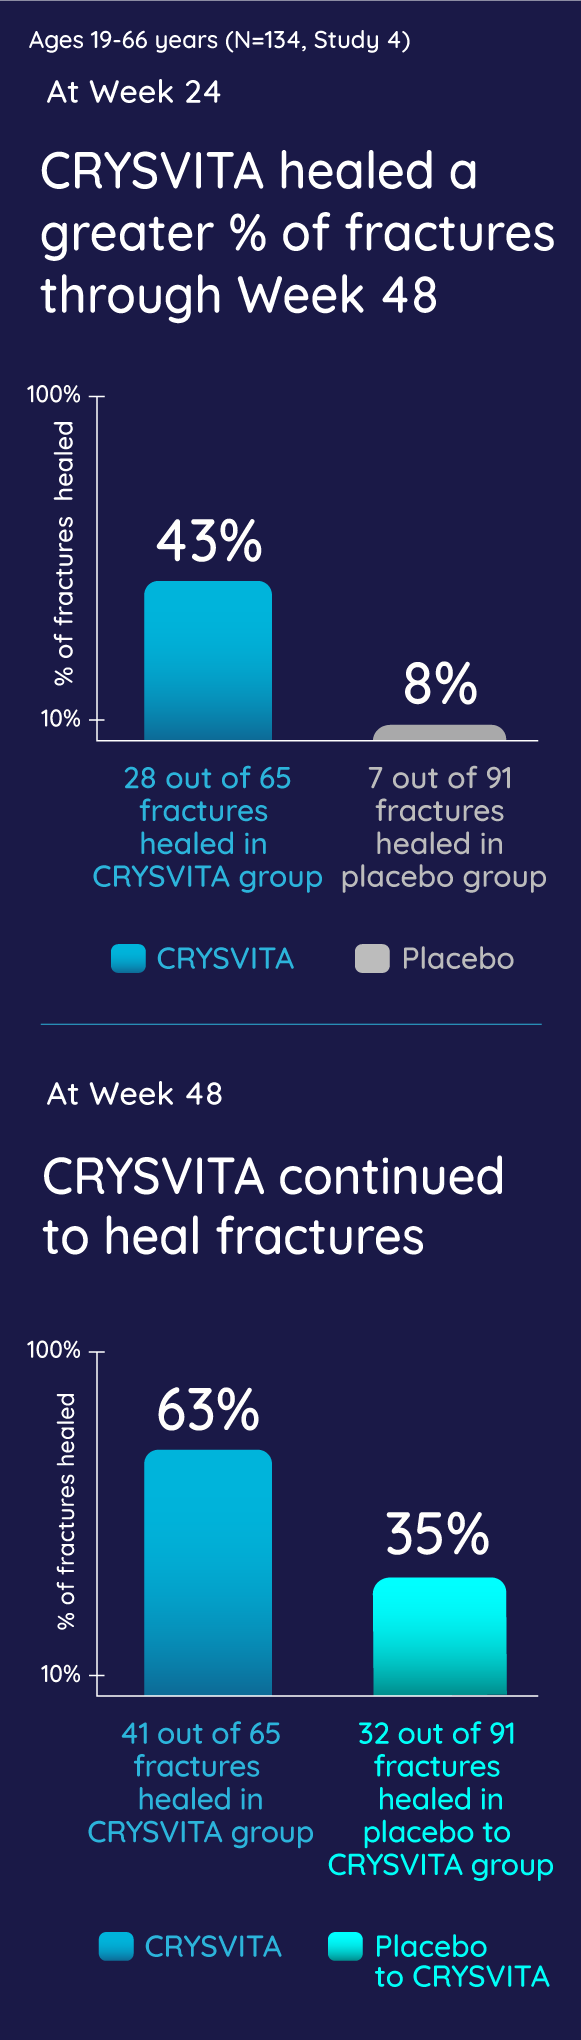 CRYSVITA led to a higher rate of fracture healing compared to placebo